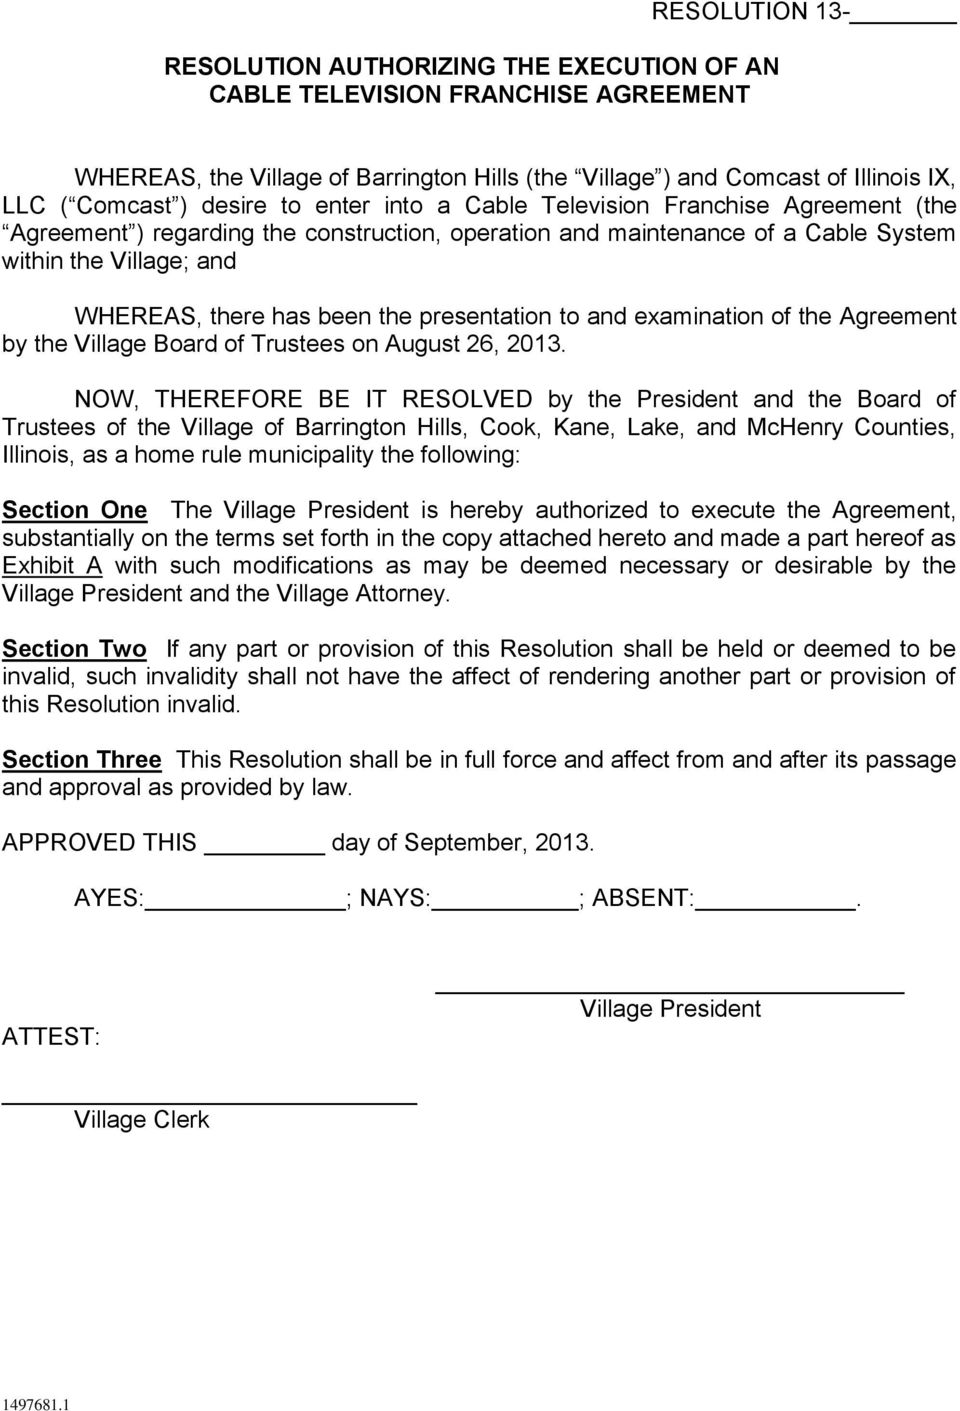 the presentation to and examination of the Agreement by the Village Board of Trustees on August 26, 2013.